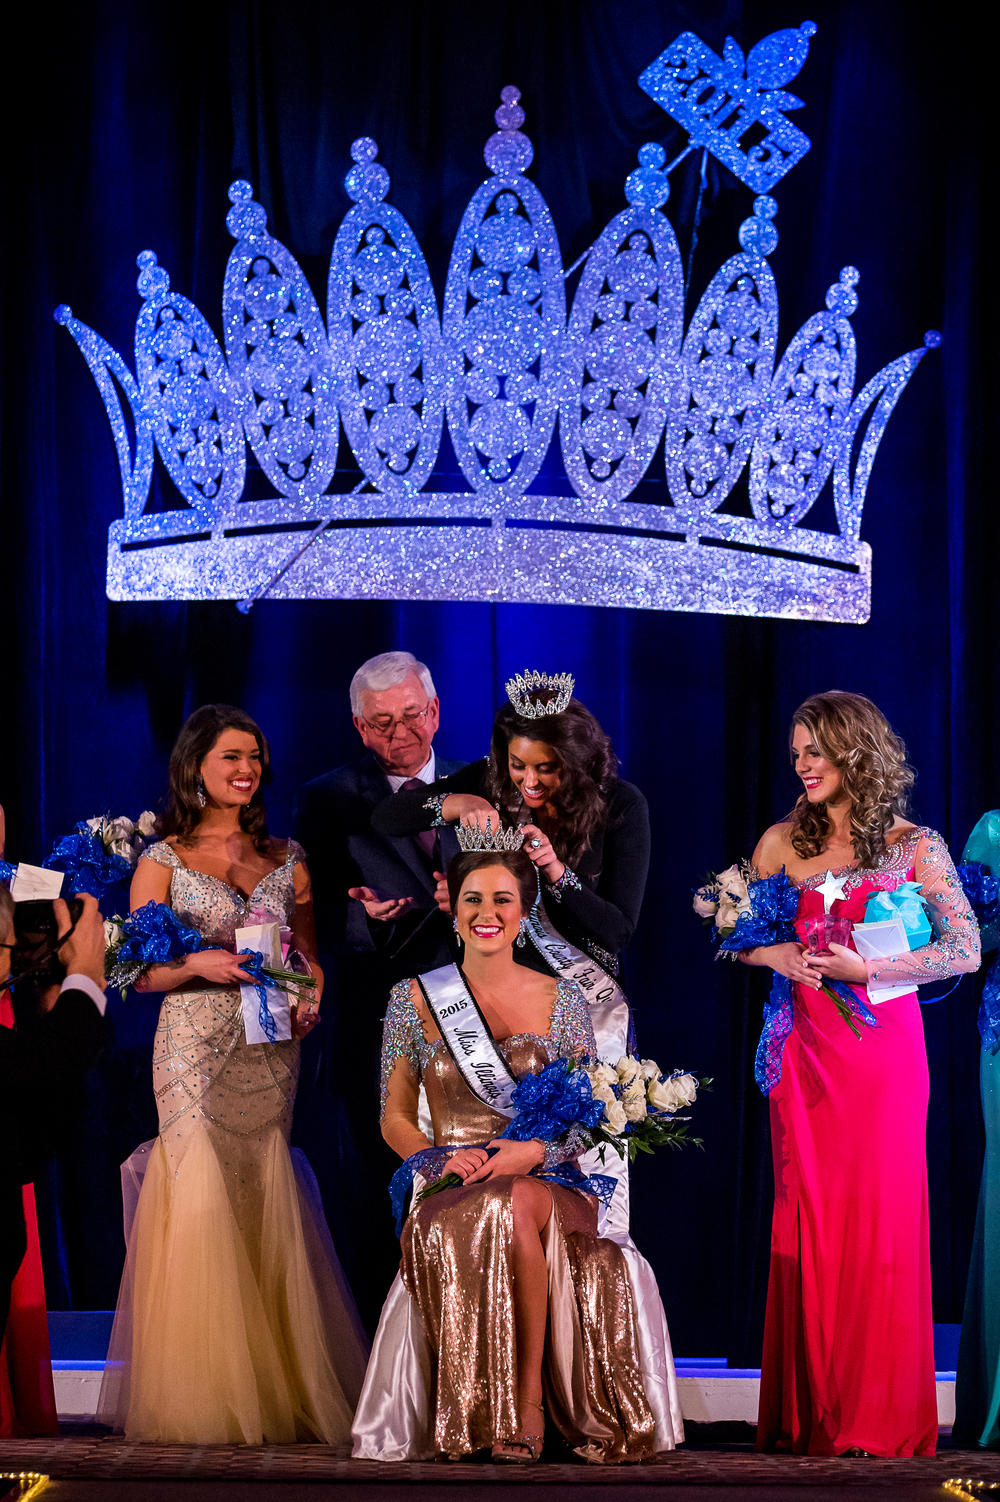 Sadie Gassmann, of Olney, Ill., receives her crown from the 2014 Queen Summer Robbins, as she is crowned the 2015 Miss Illinois County Fair Queen during the pageant at the Crowne Plaza, Sunday, Jan. 18, 2015, in Springfield, Ill. Justin L. Fowler/The State Journal-Register